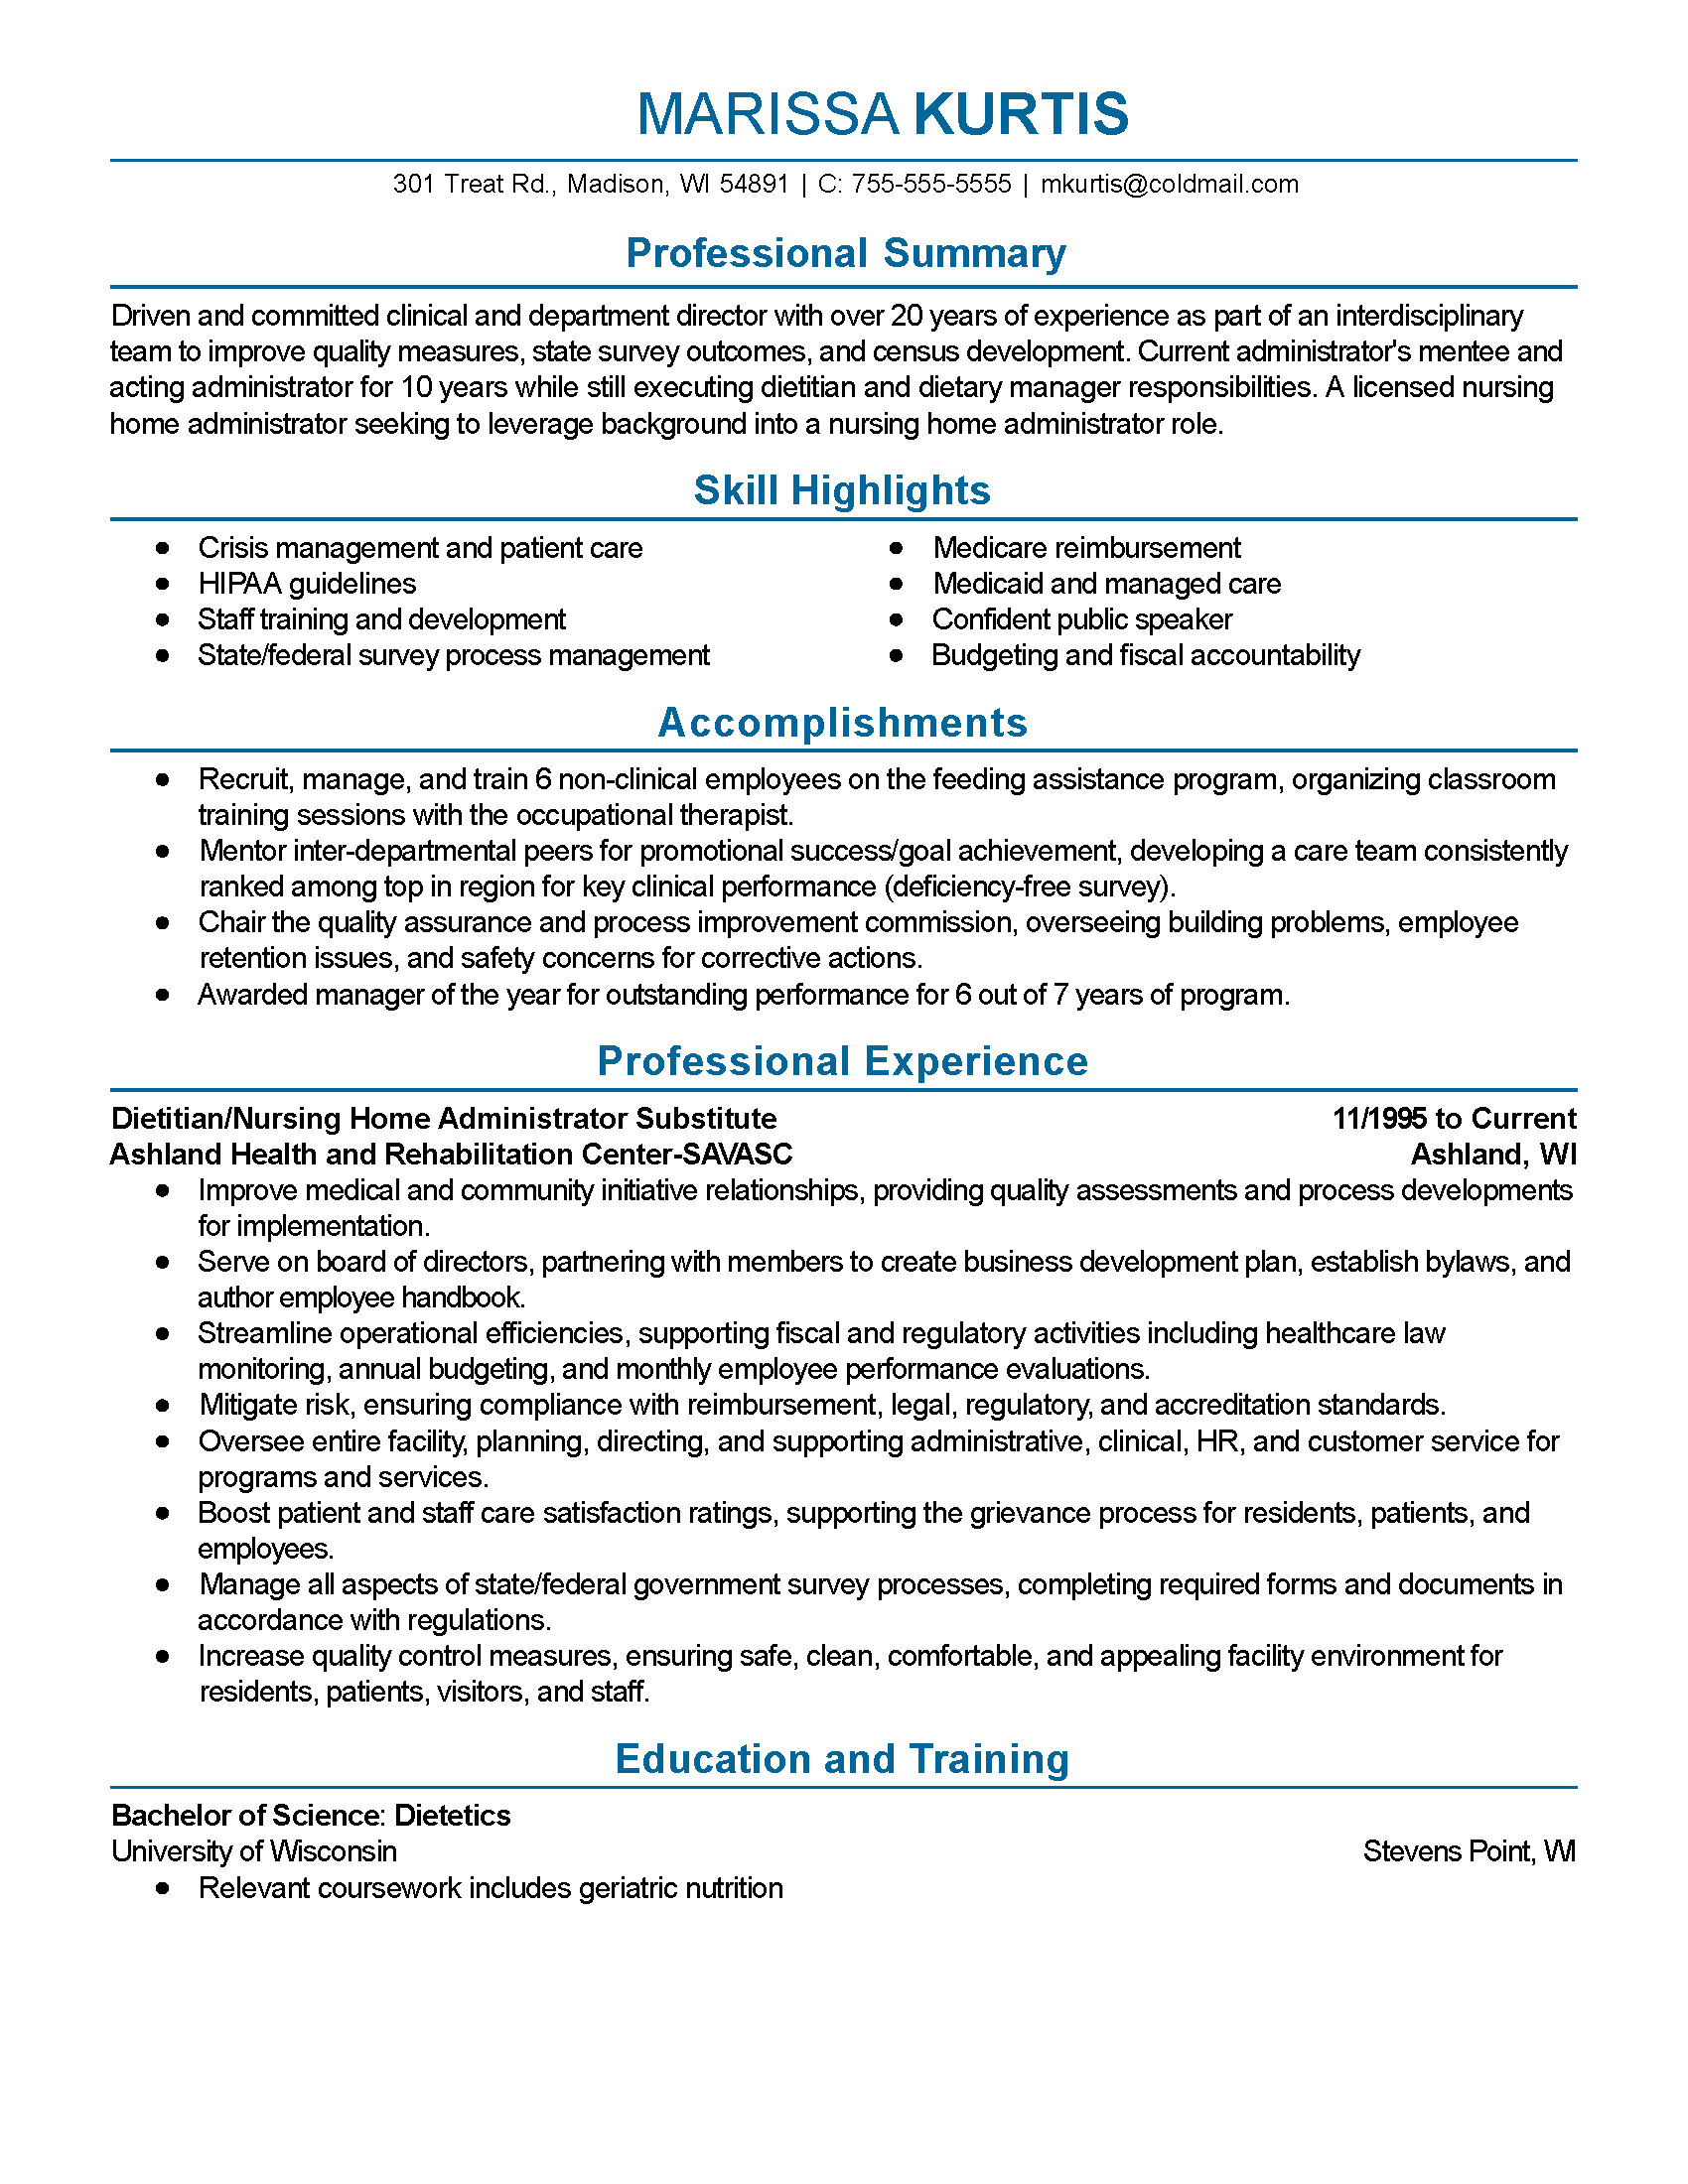 american career college optimal resume central penn